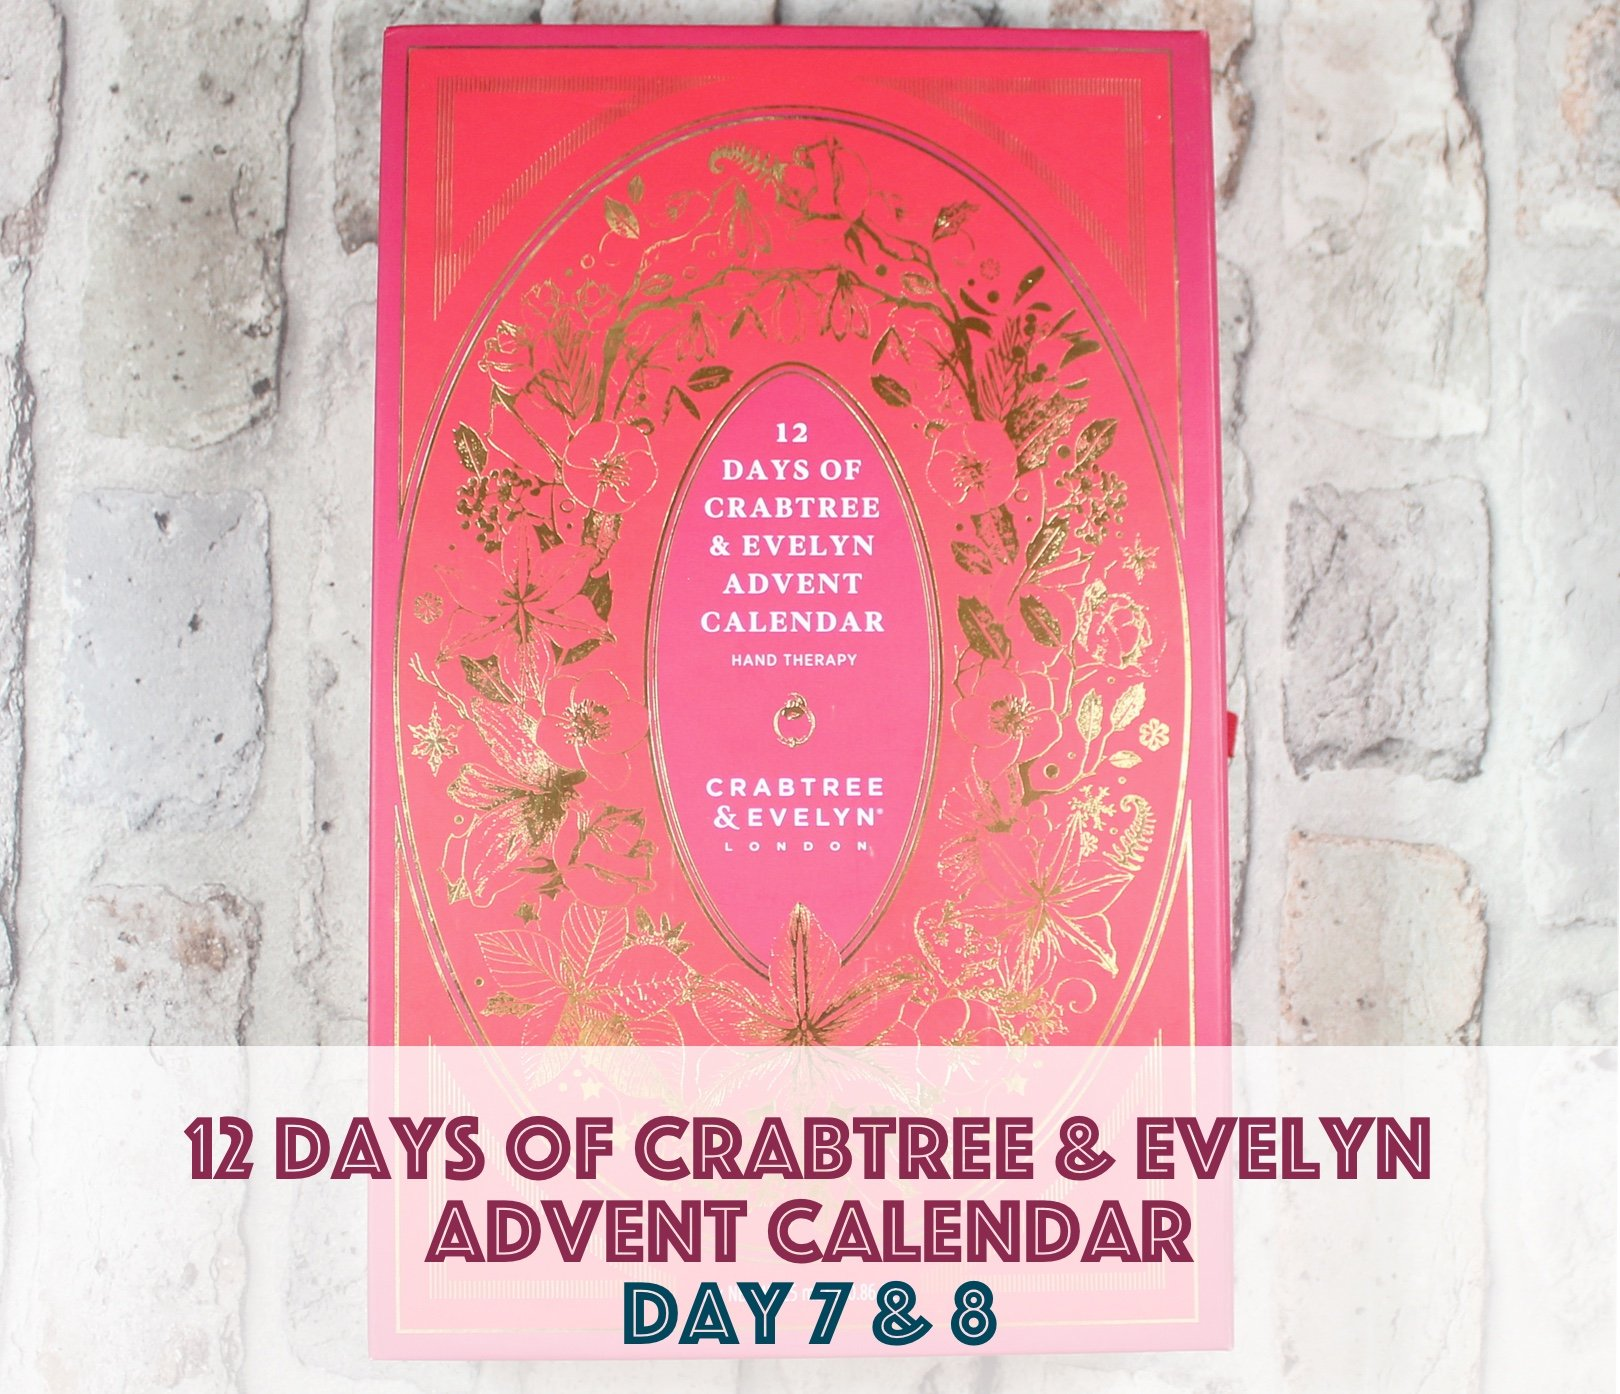 12 days of crabtree & evelyn advent calendar – day 7 & 8